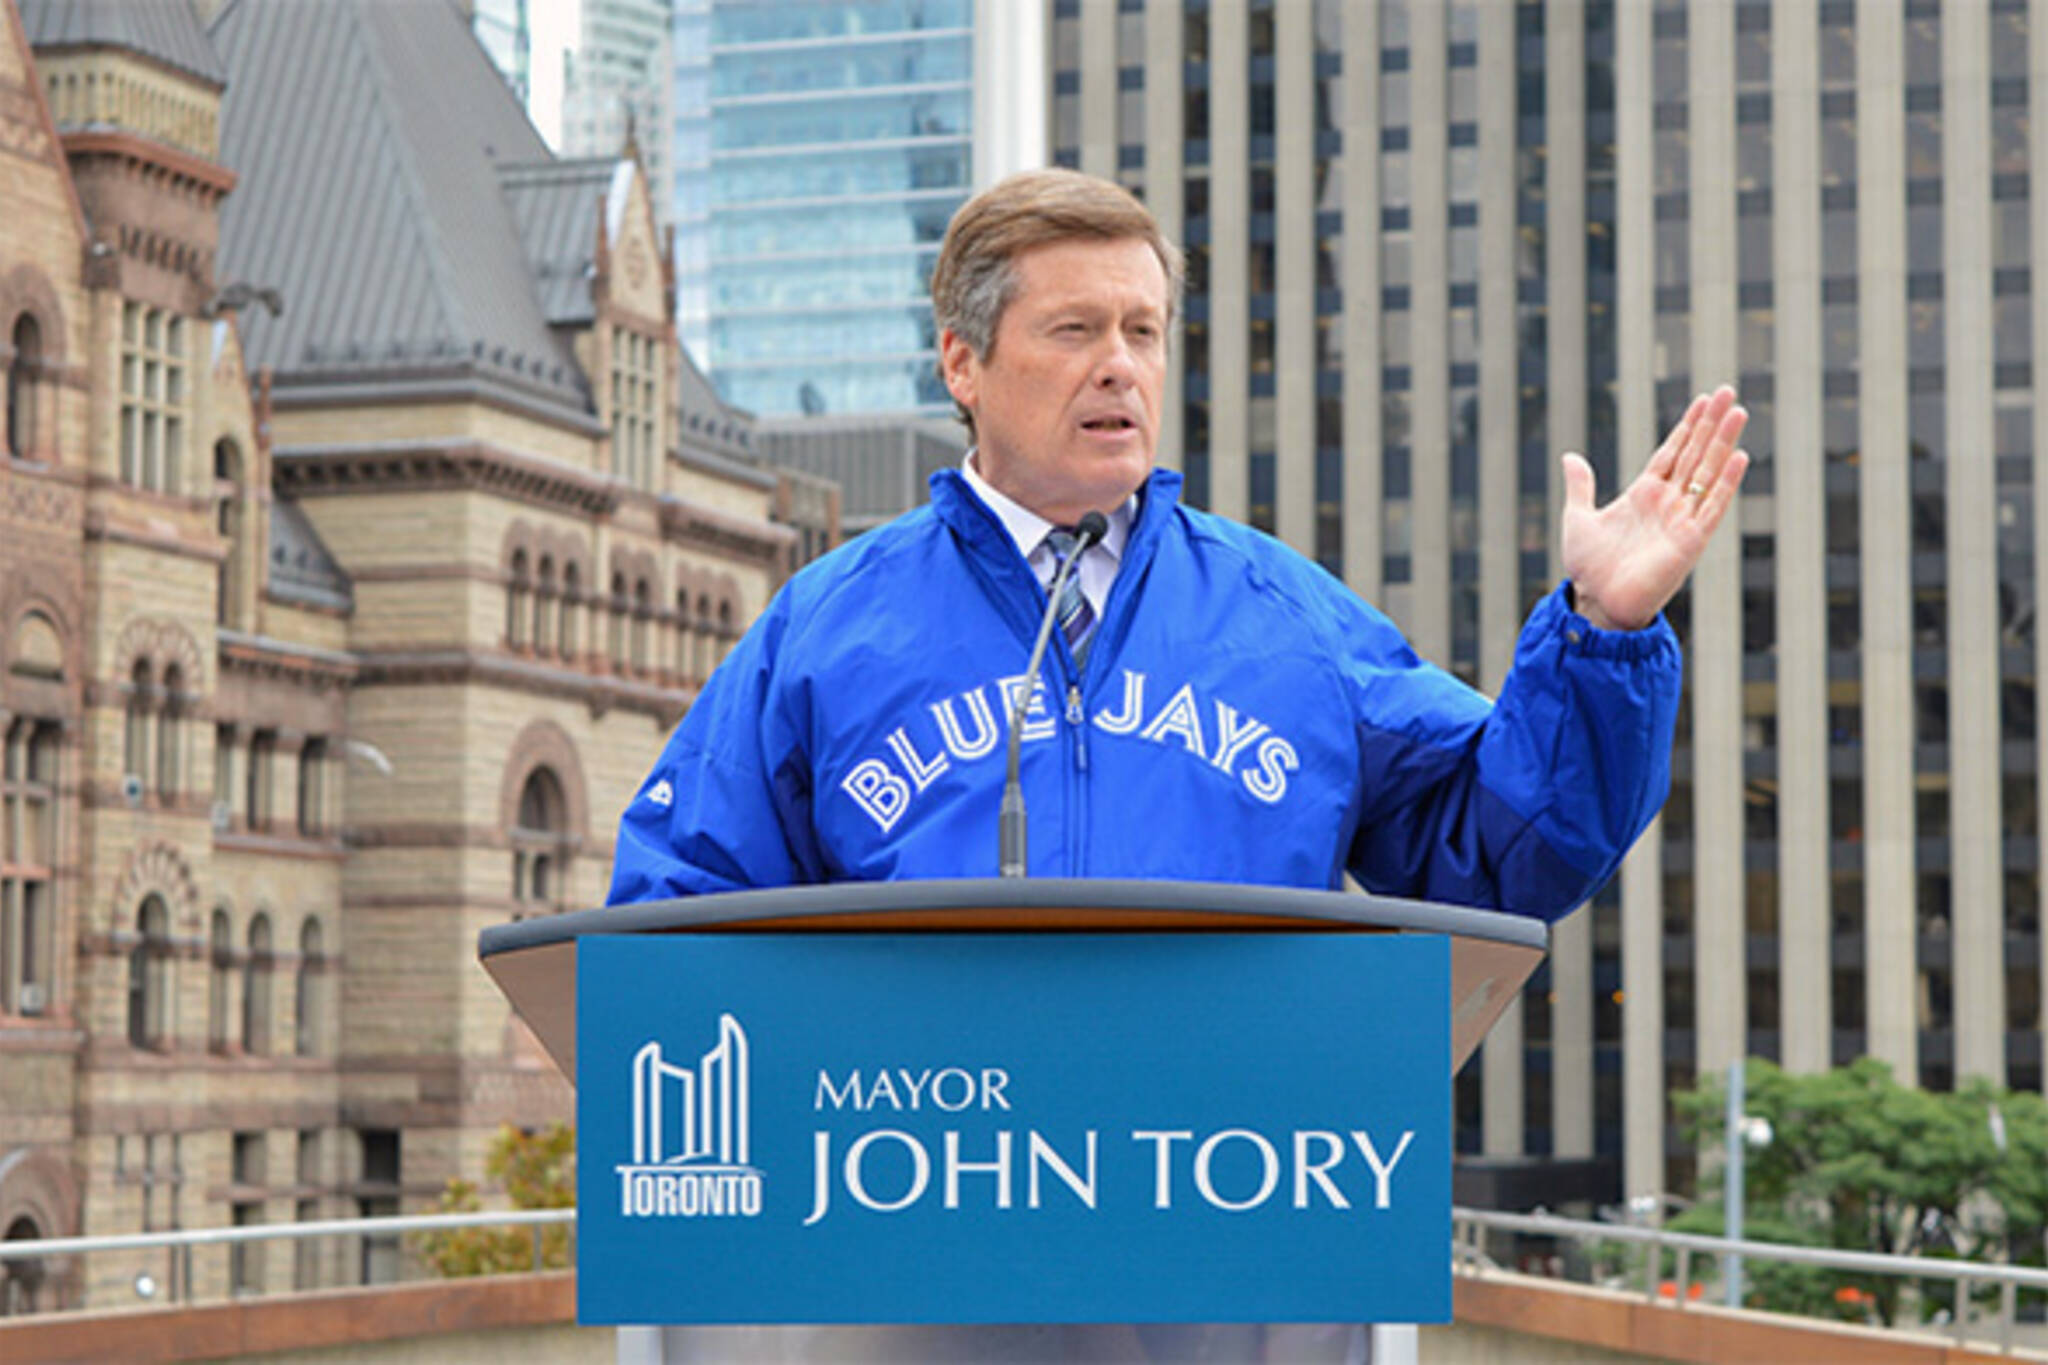 Blue Jays city hall